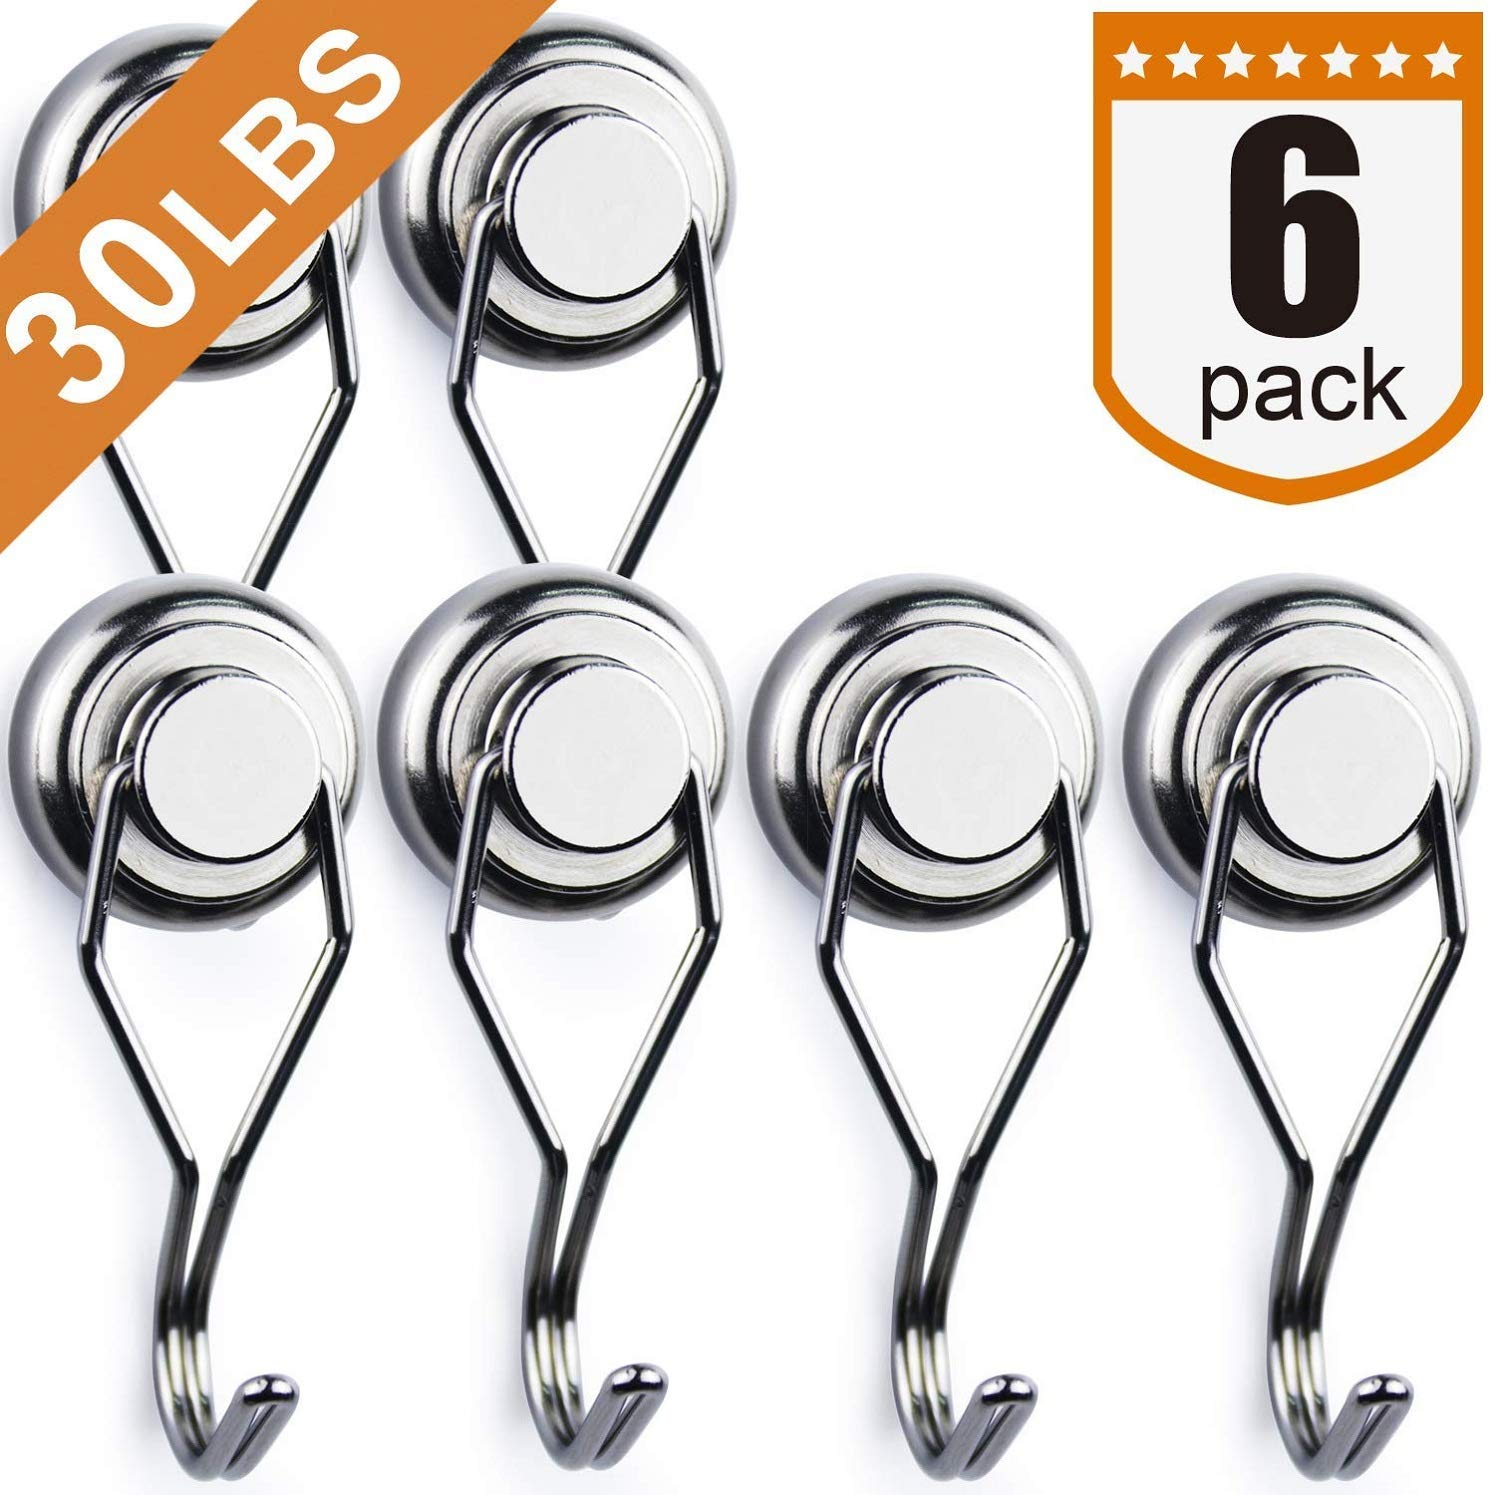 Swivel Swing Powerful Magnetic Hooks,Strong Heavy Duty Neodymium Magnet Hooks - Great for Your Refrigerator and Other Magnetic Surfaces - Pack of 6